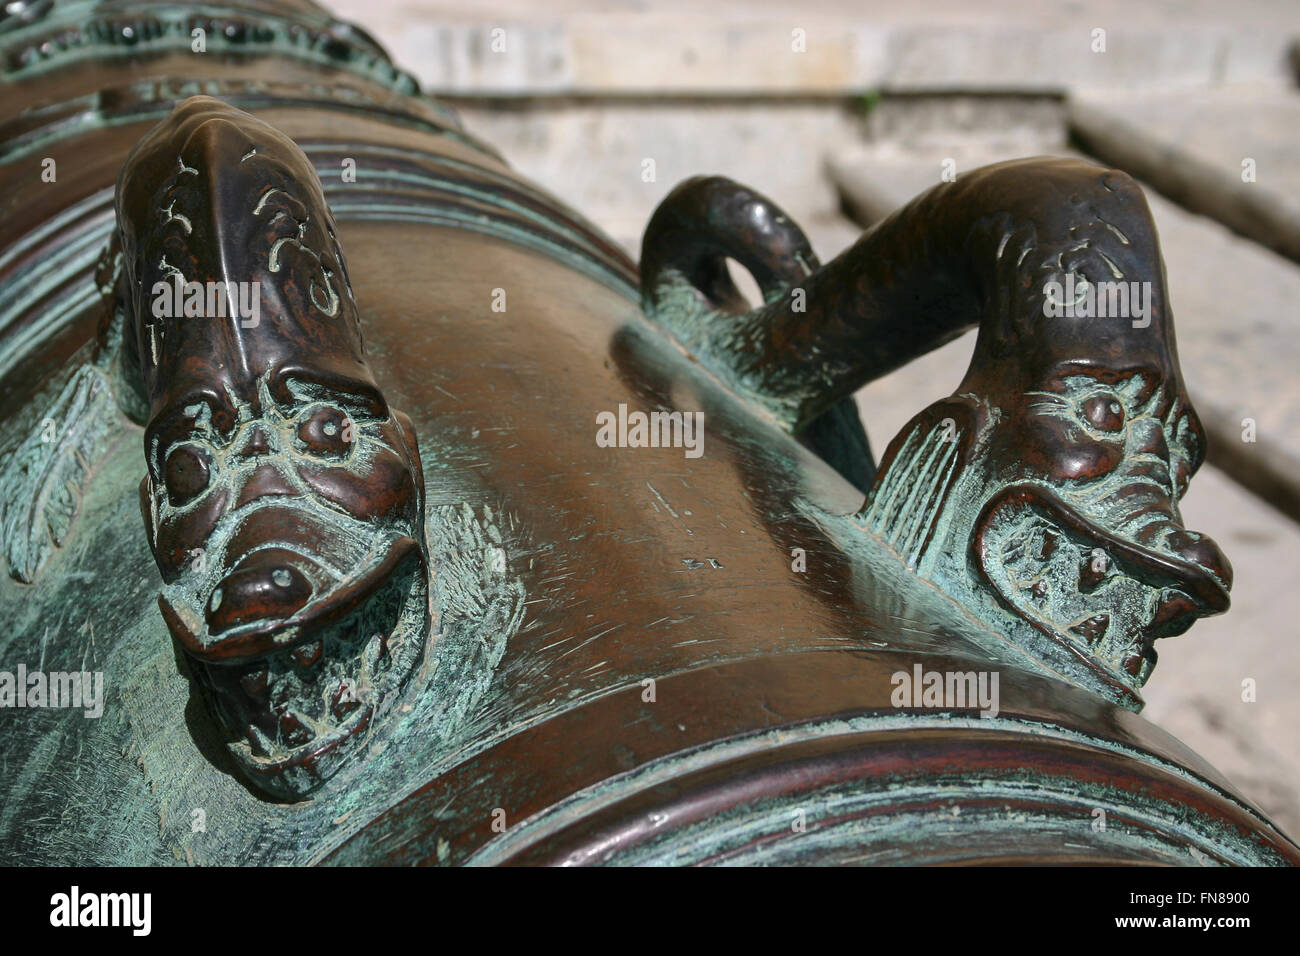 Snake or dragon handles on a bronze cannon with green patina in Malta. - Stock Image